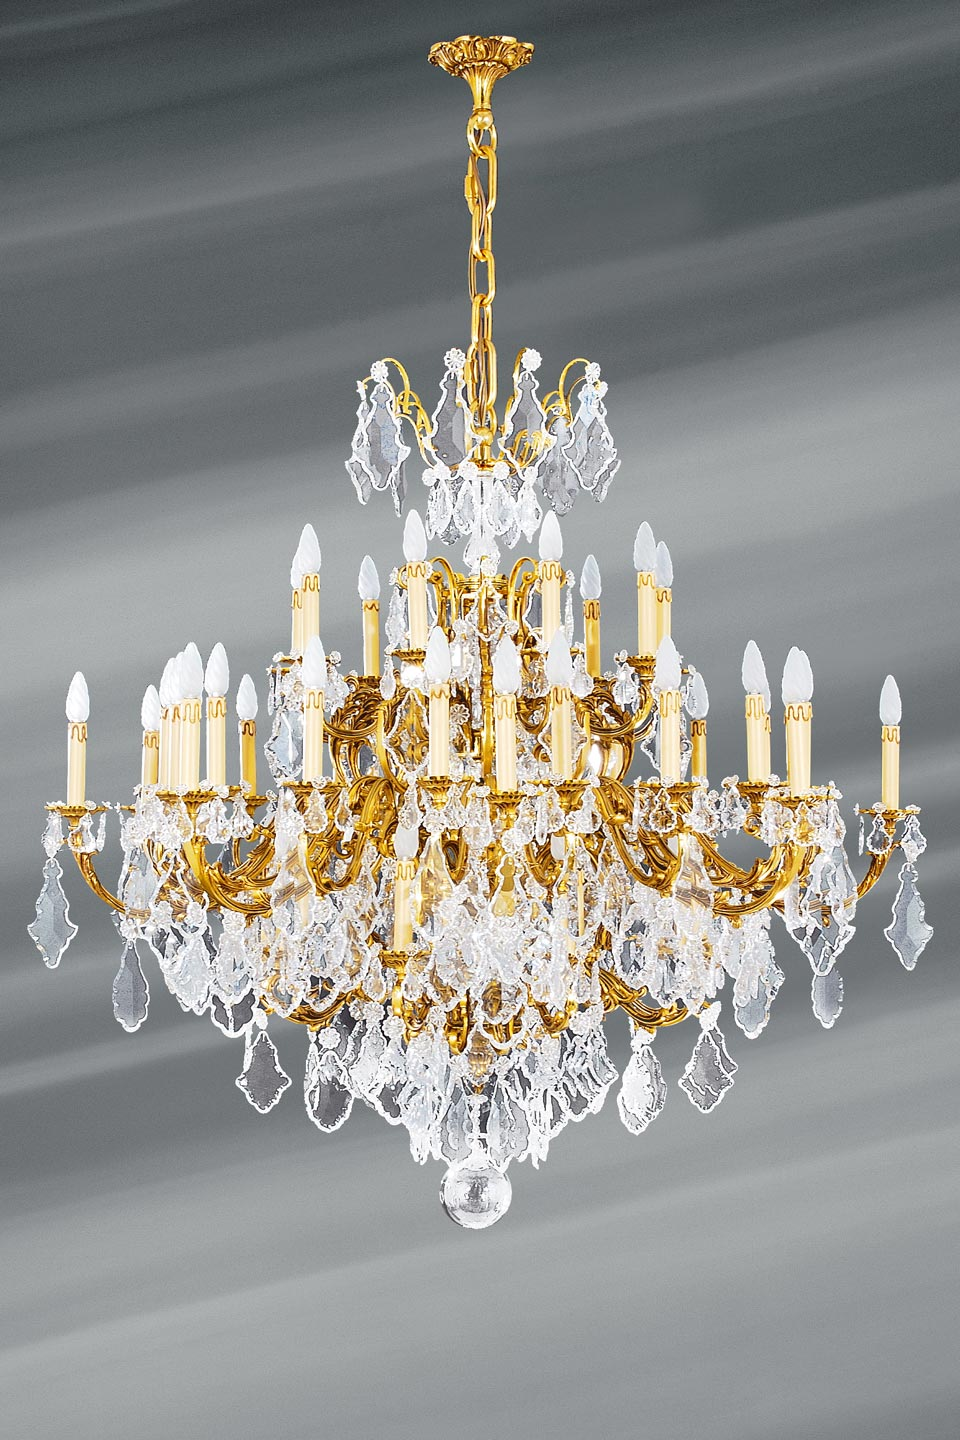 lustre cristal de boh me louis xv dor 45 lumi res. Black Bedroom Furniture Sets. Home Design Ideas